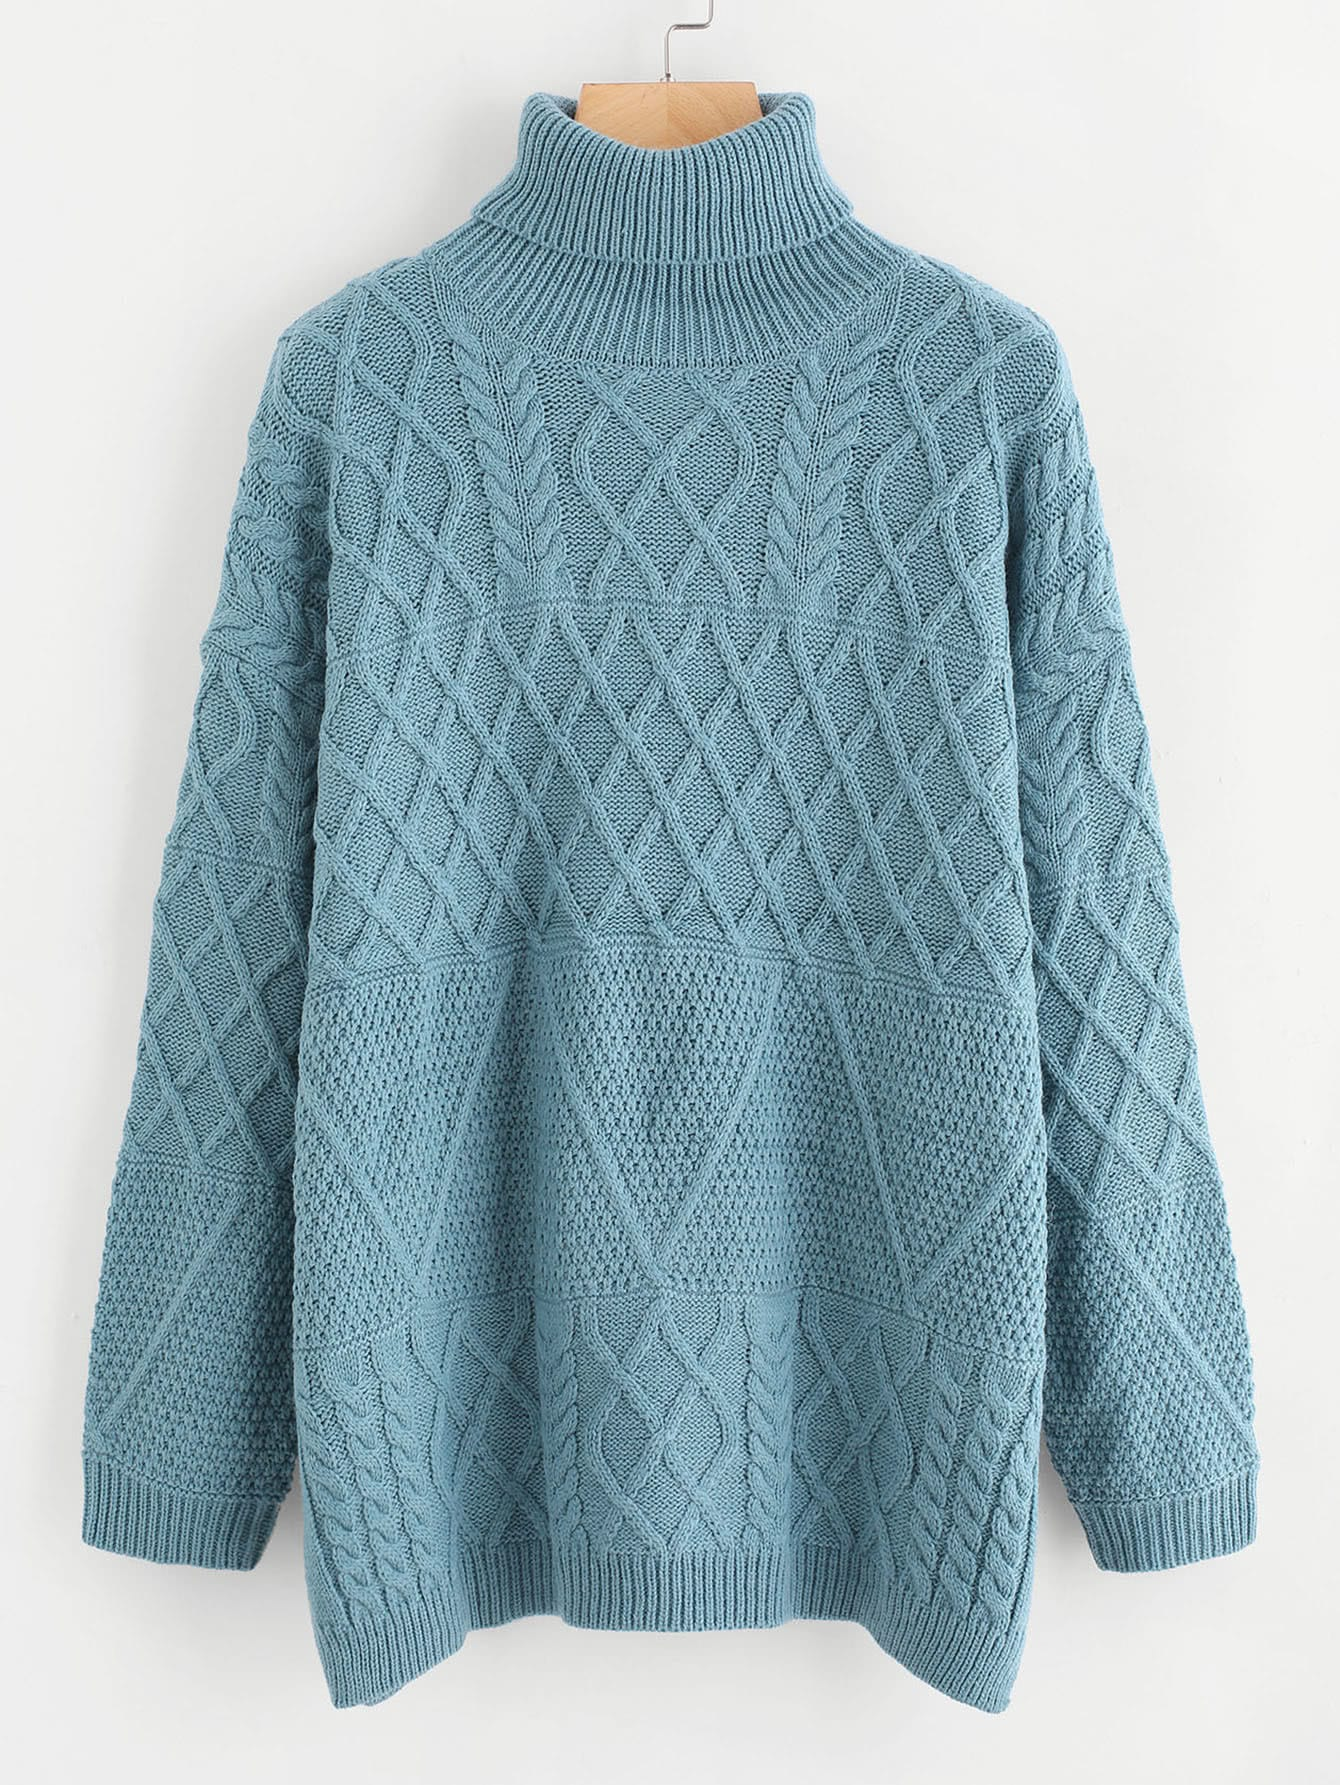 Side Slit Cable Knit Turtleneck Sweater turtleneck textured cable knit sweater